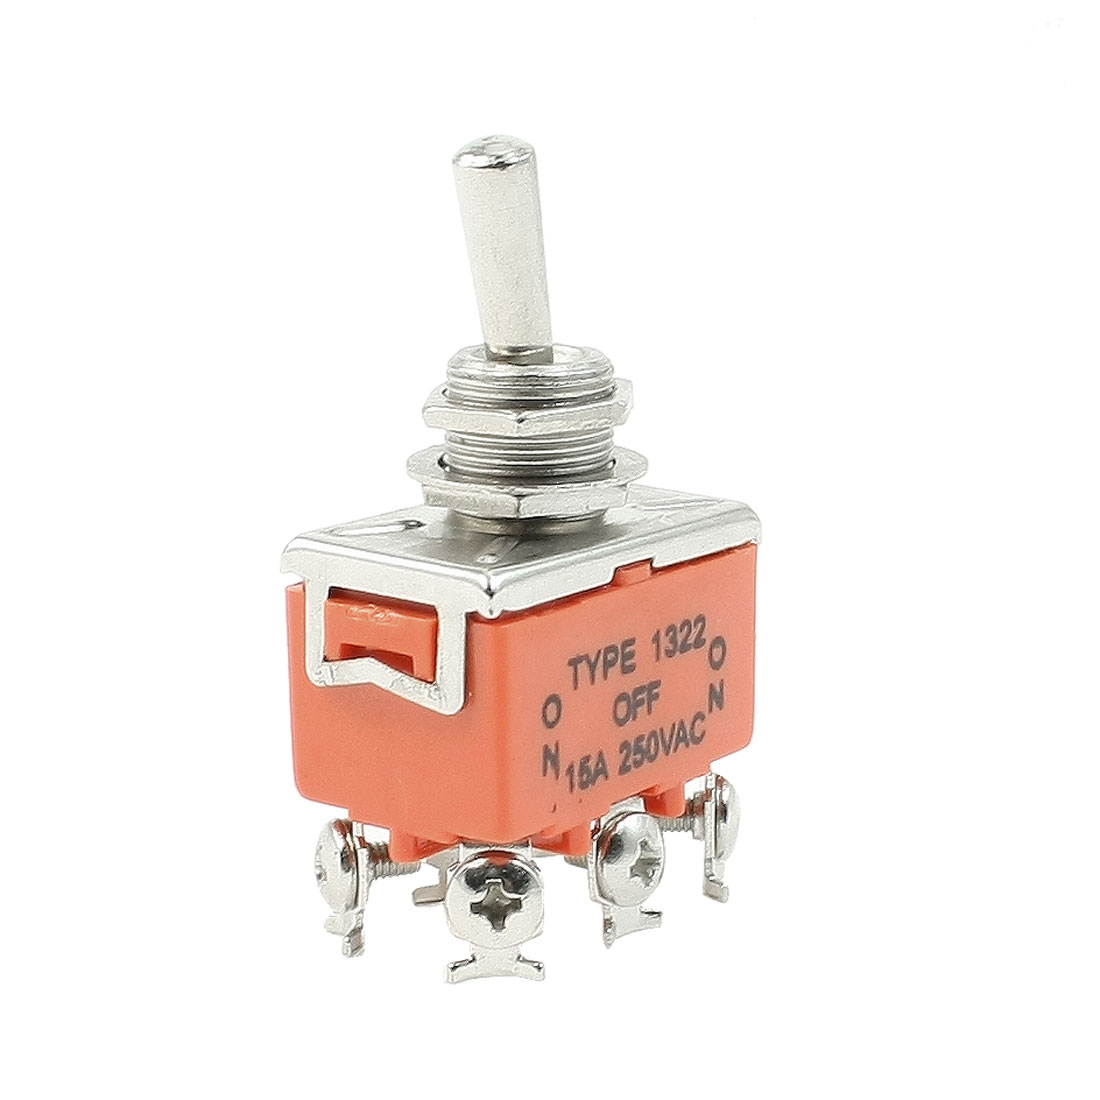 UXCELL Ac 250V 15A On/Off/On Dpdt Locking Toggle Switch W 6 Terminals(China (Mainland))